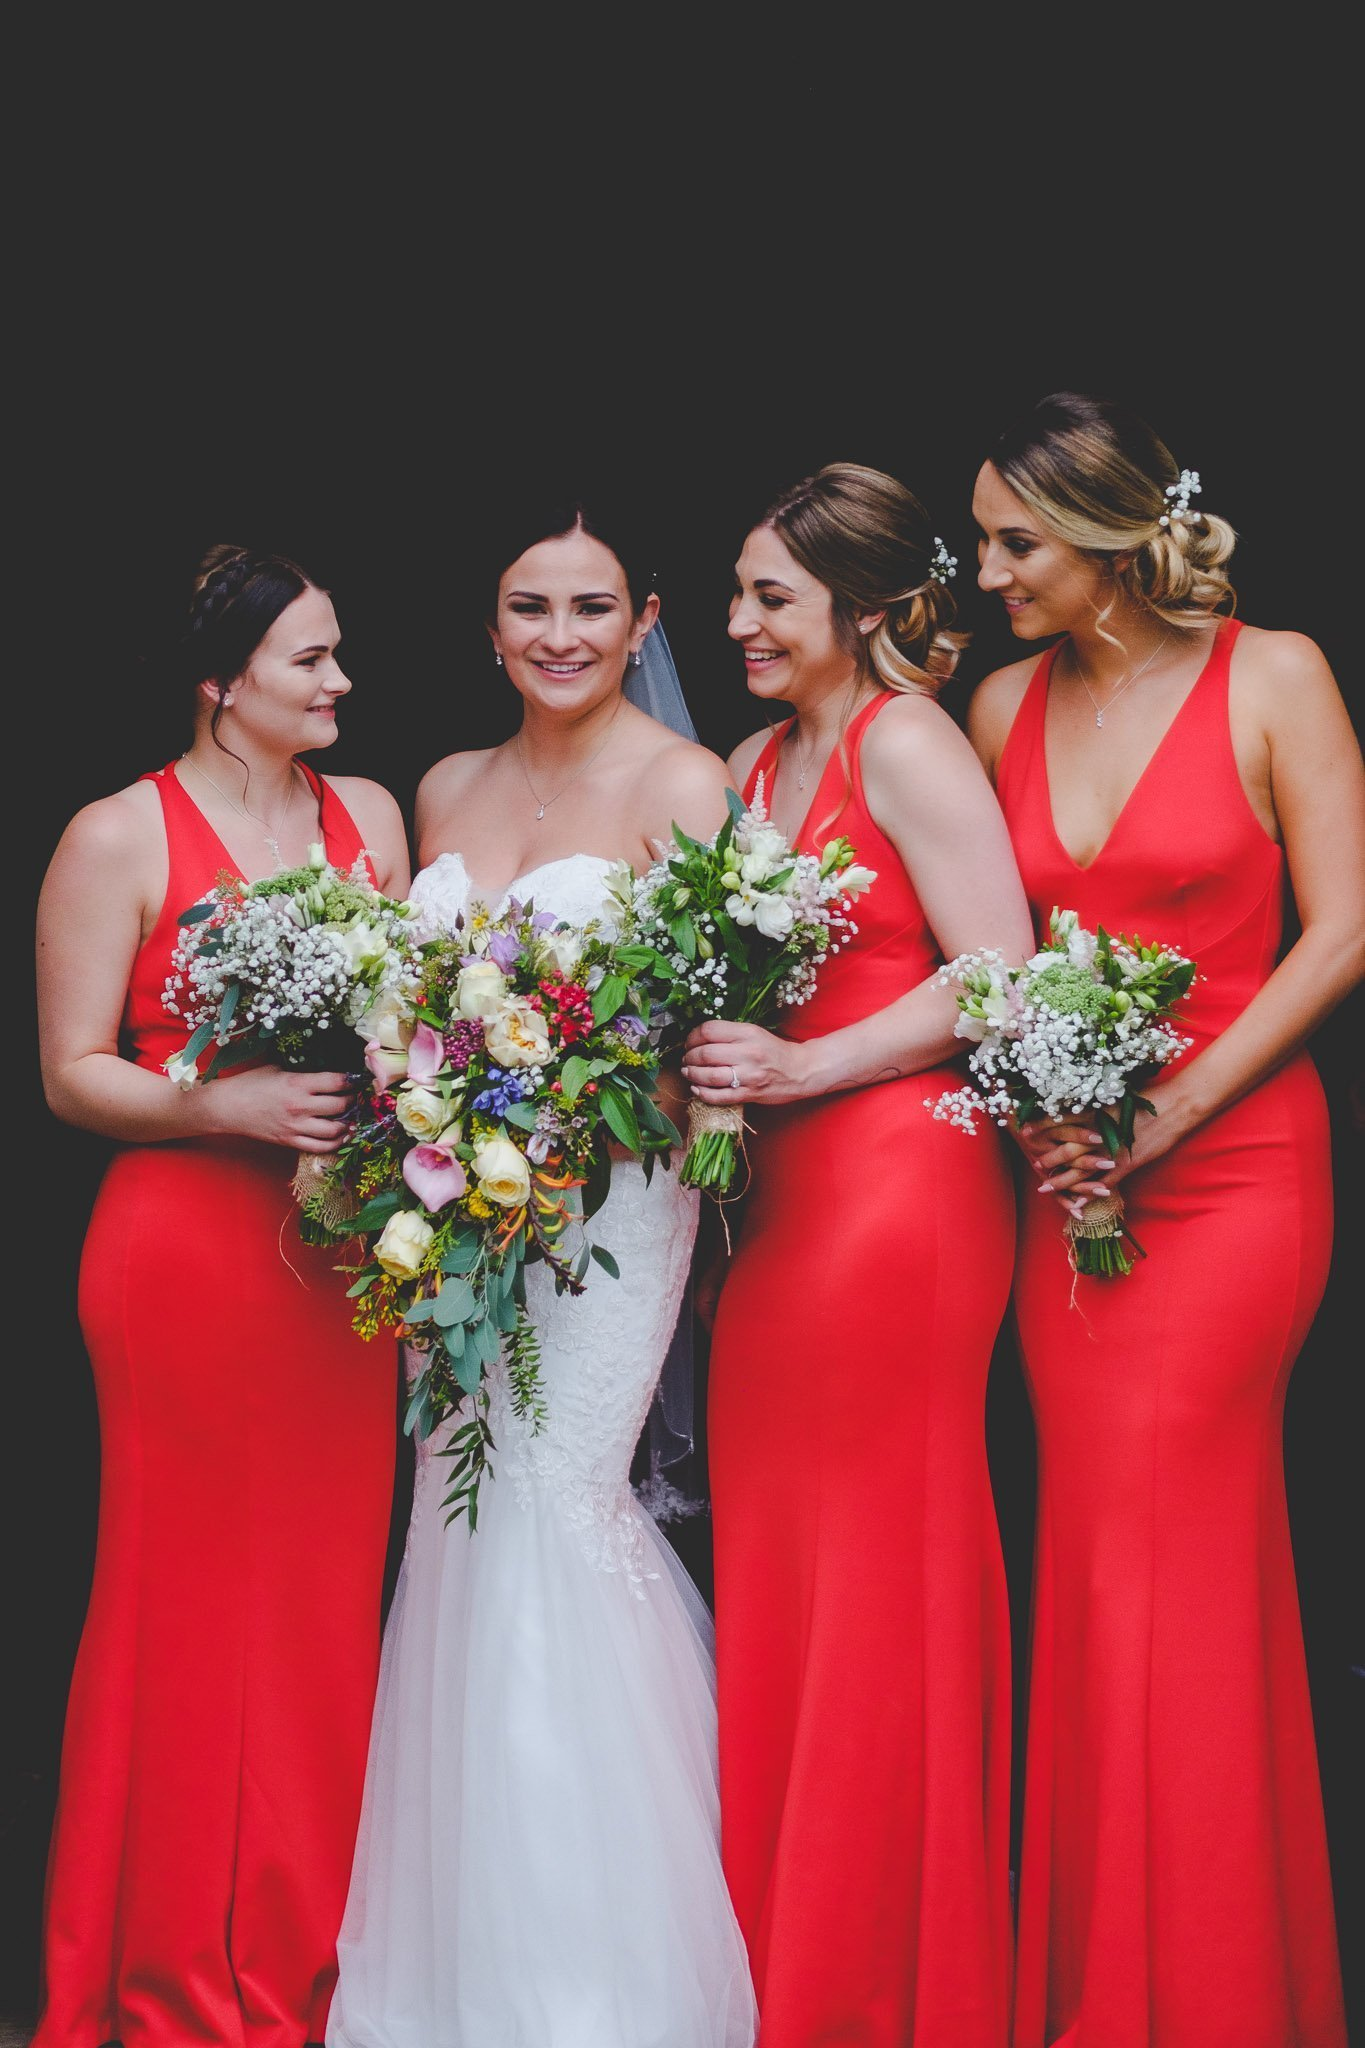 Portrait of bride and bridesmaids dressed in red holding wedding bouquets at Leez Priory wedding. Photography by thatthingyoupluck.